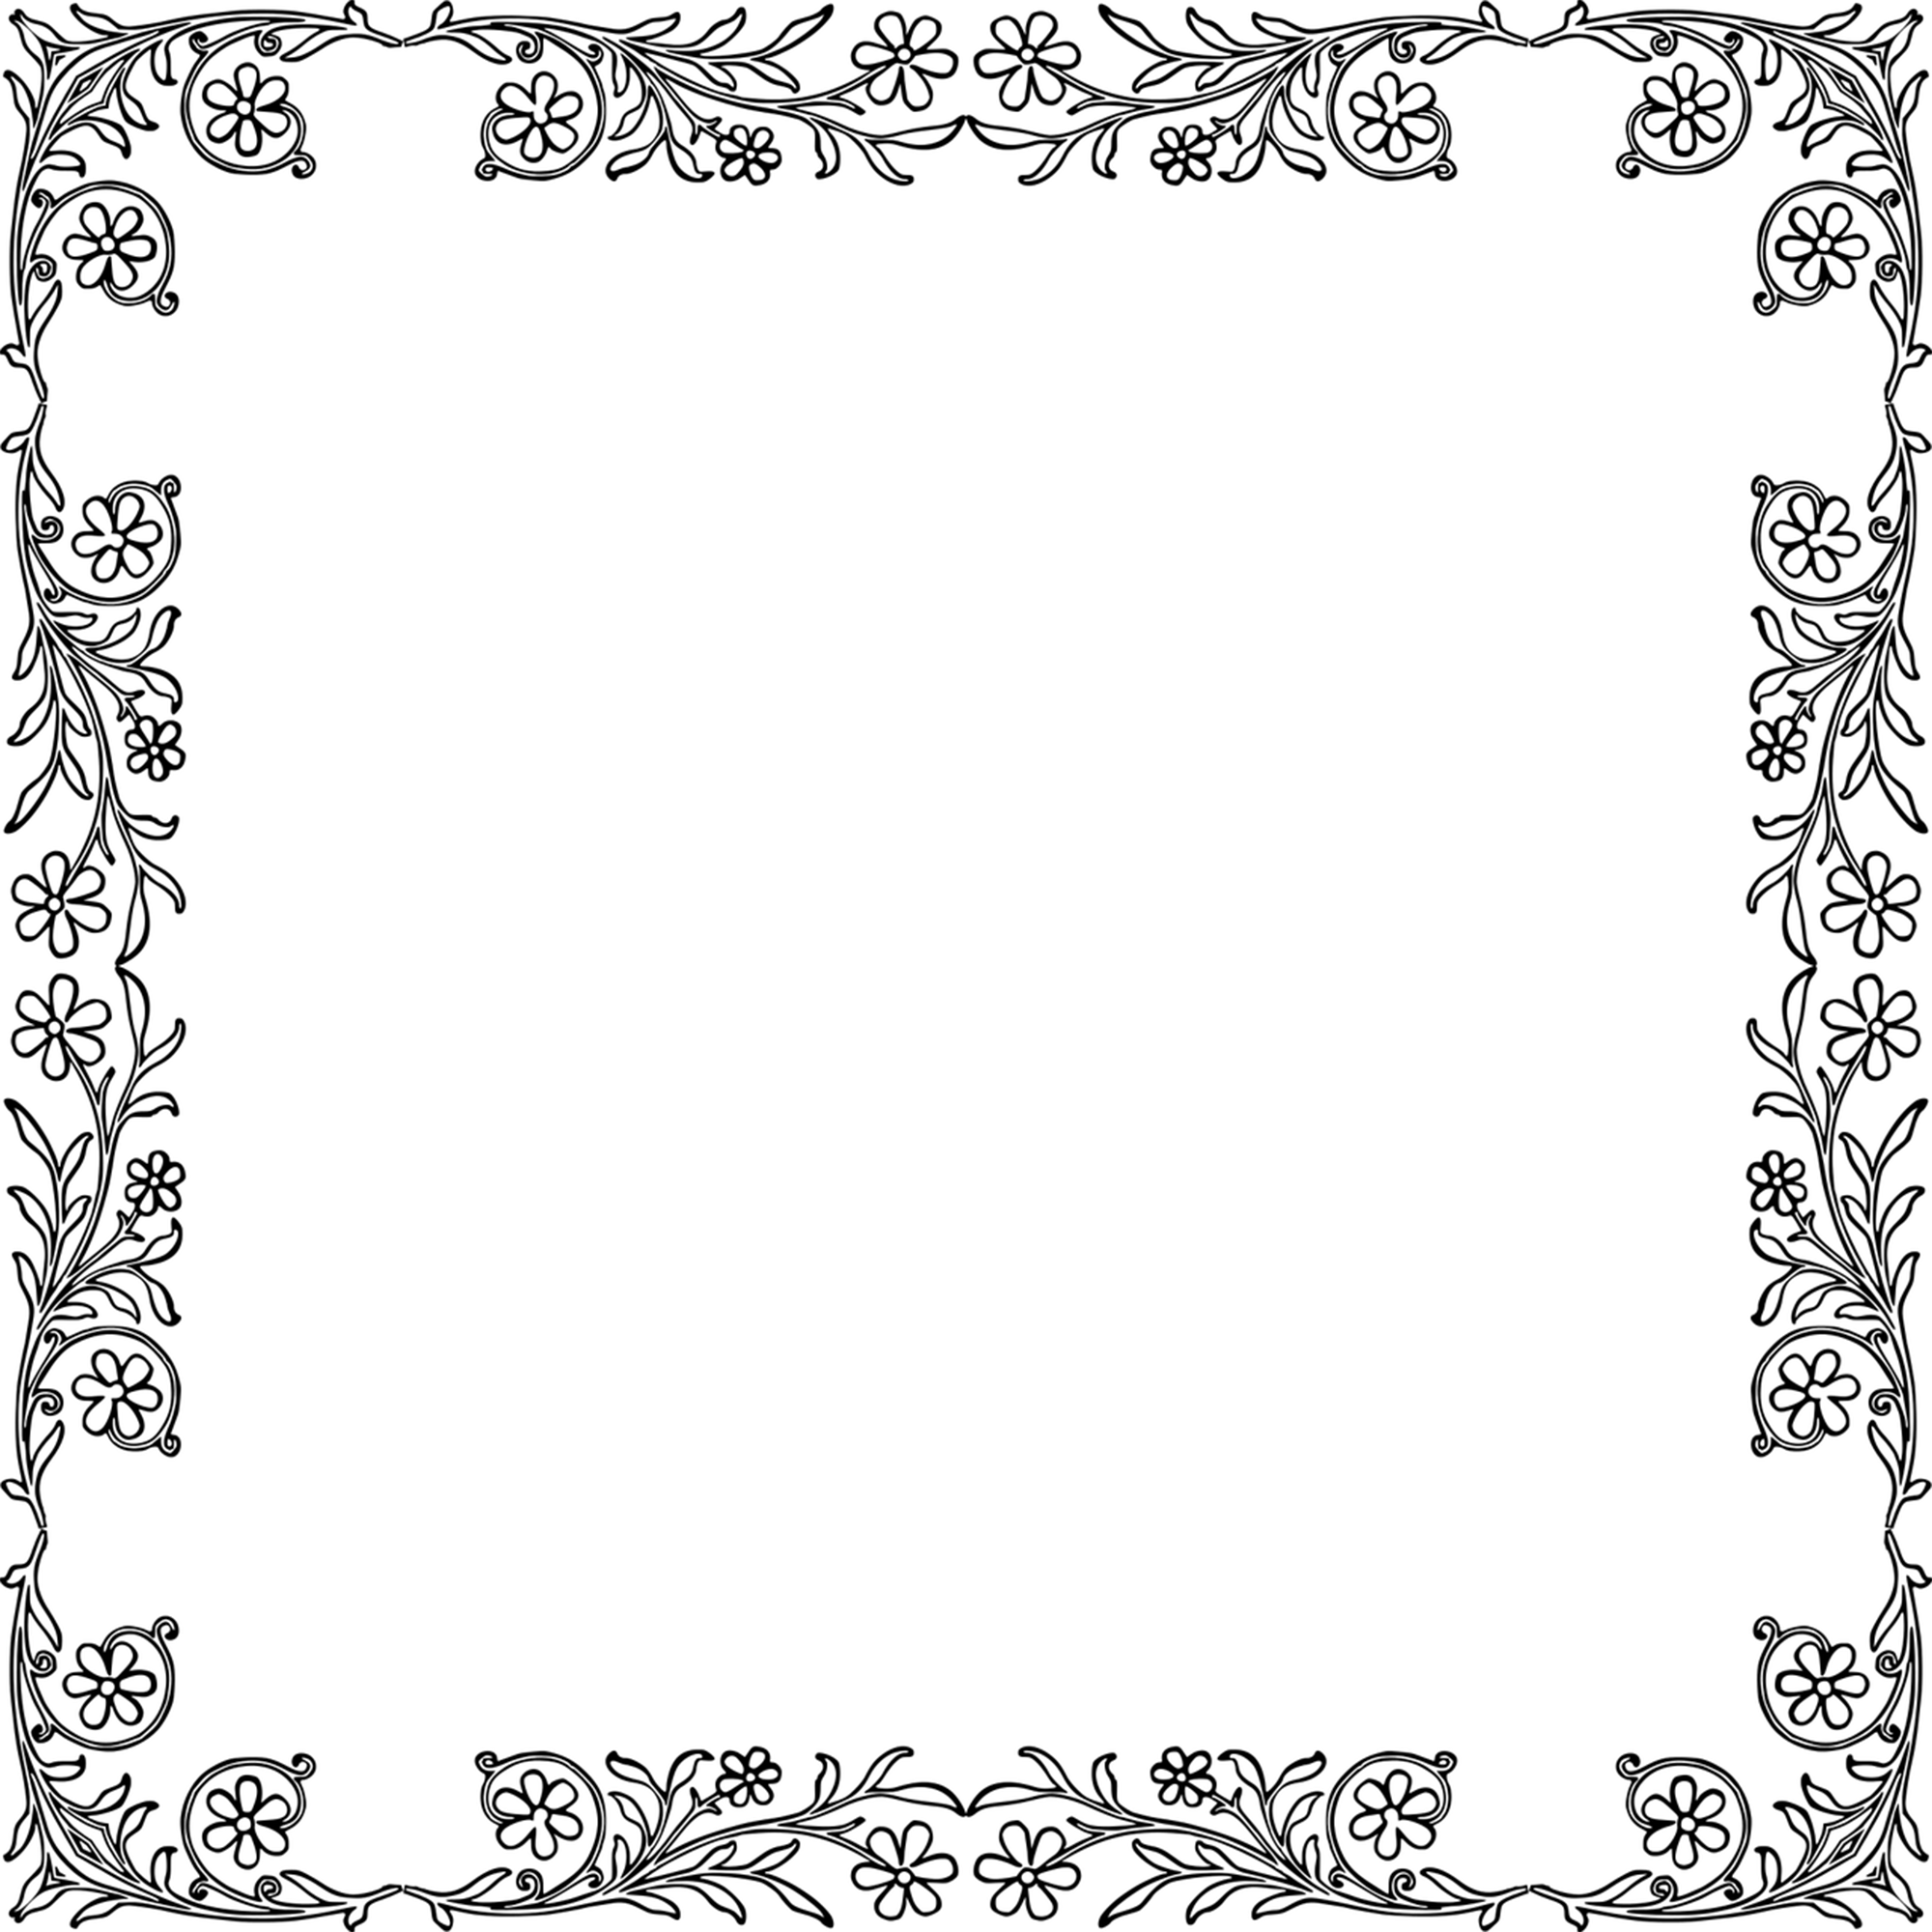 White lace frame png. Free picture graphics for